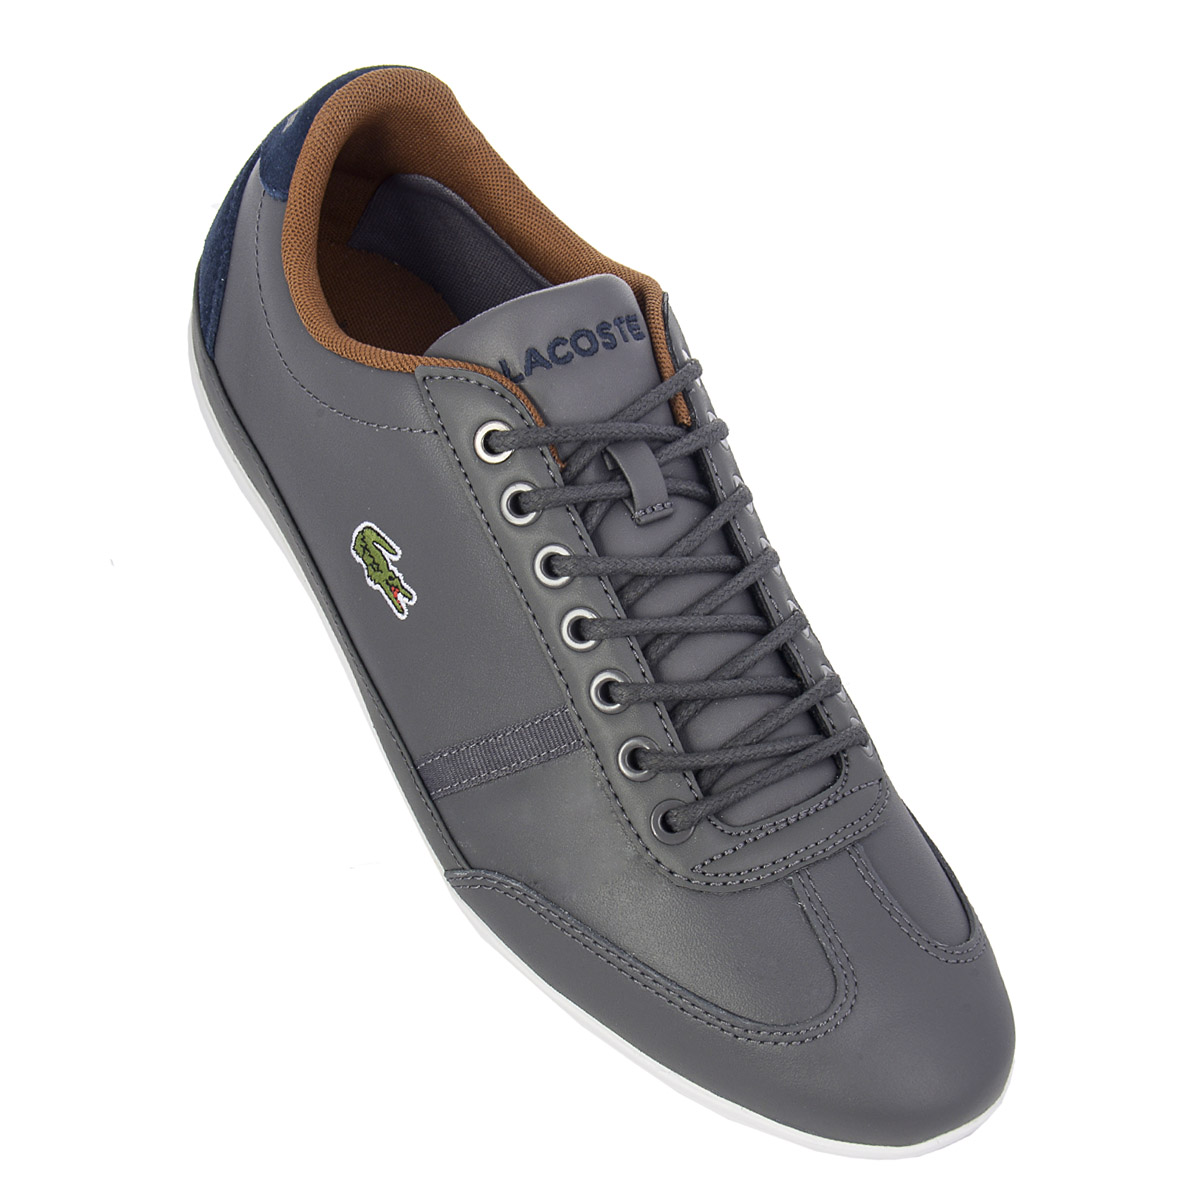 Mens Zu Lacoste Shoes Sneakers Misano Sport Cam0046248 Trainers Details New Sale wqZFYwx